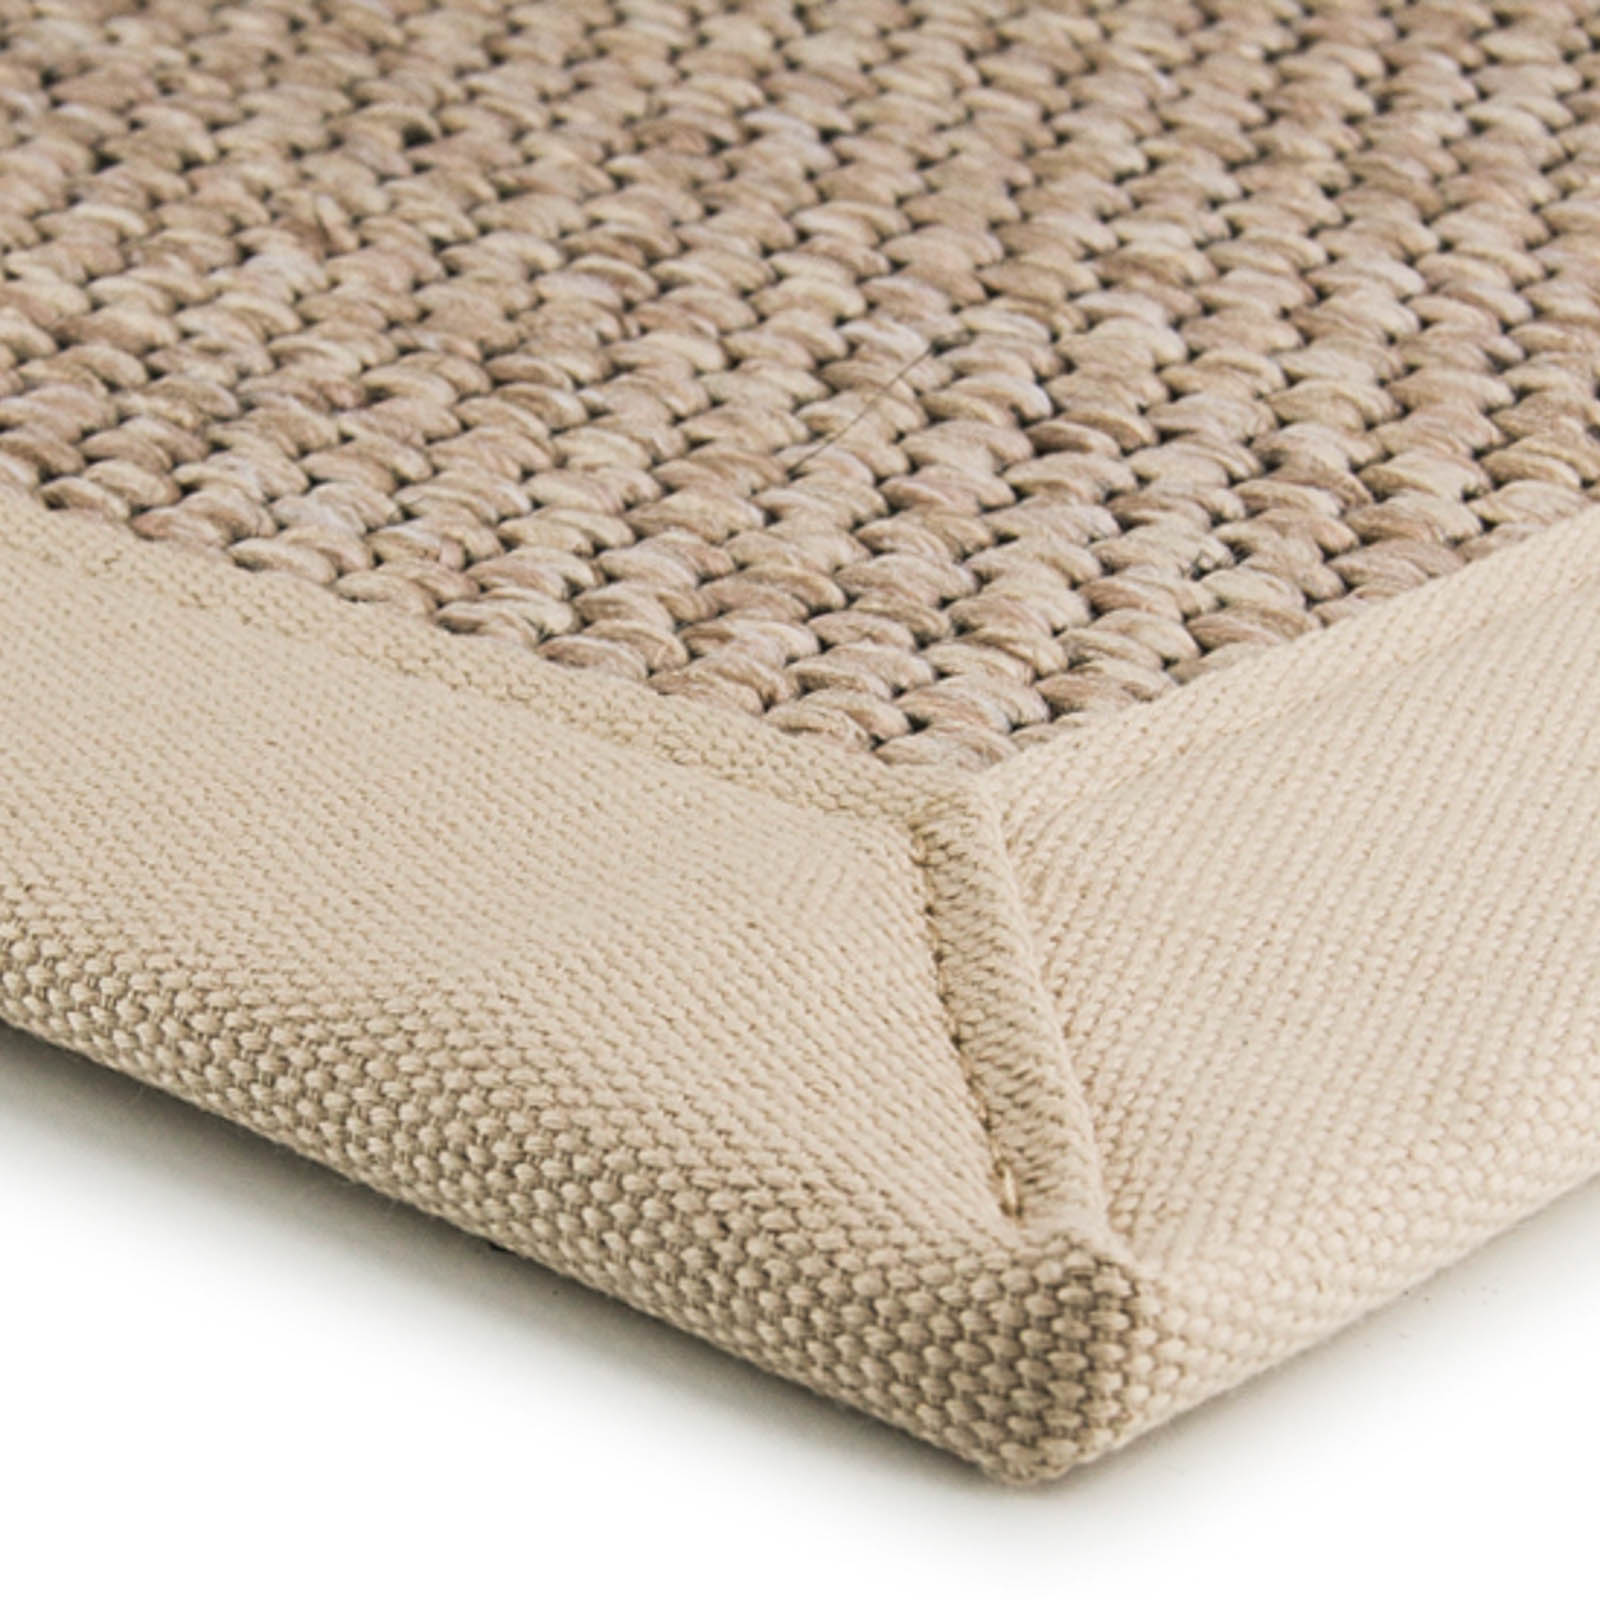 Lima Rugs 3412 in Light Beige